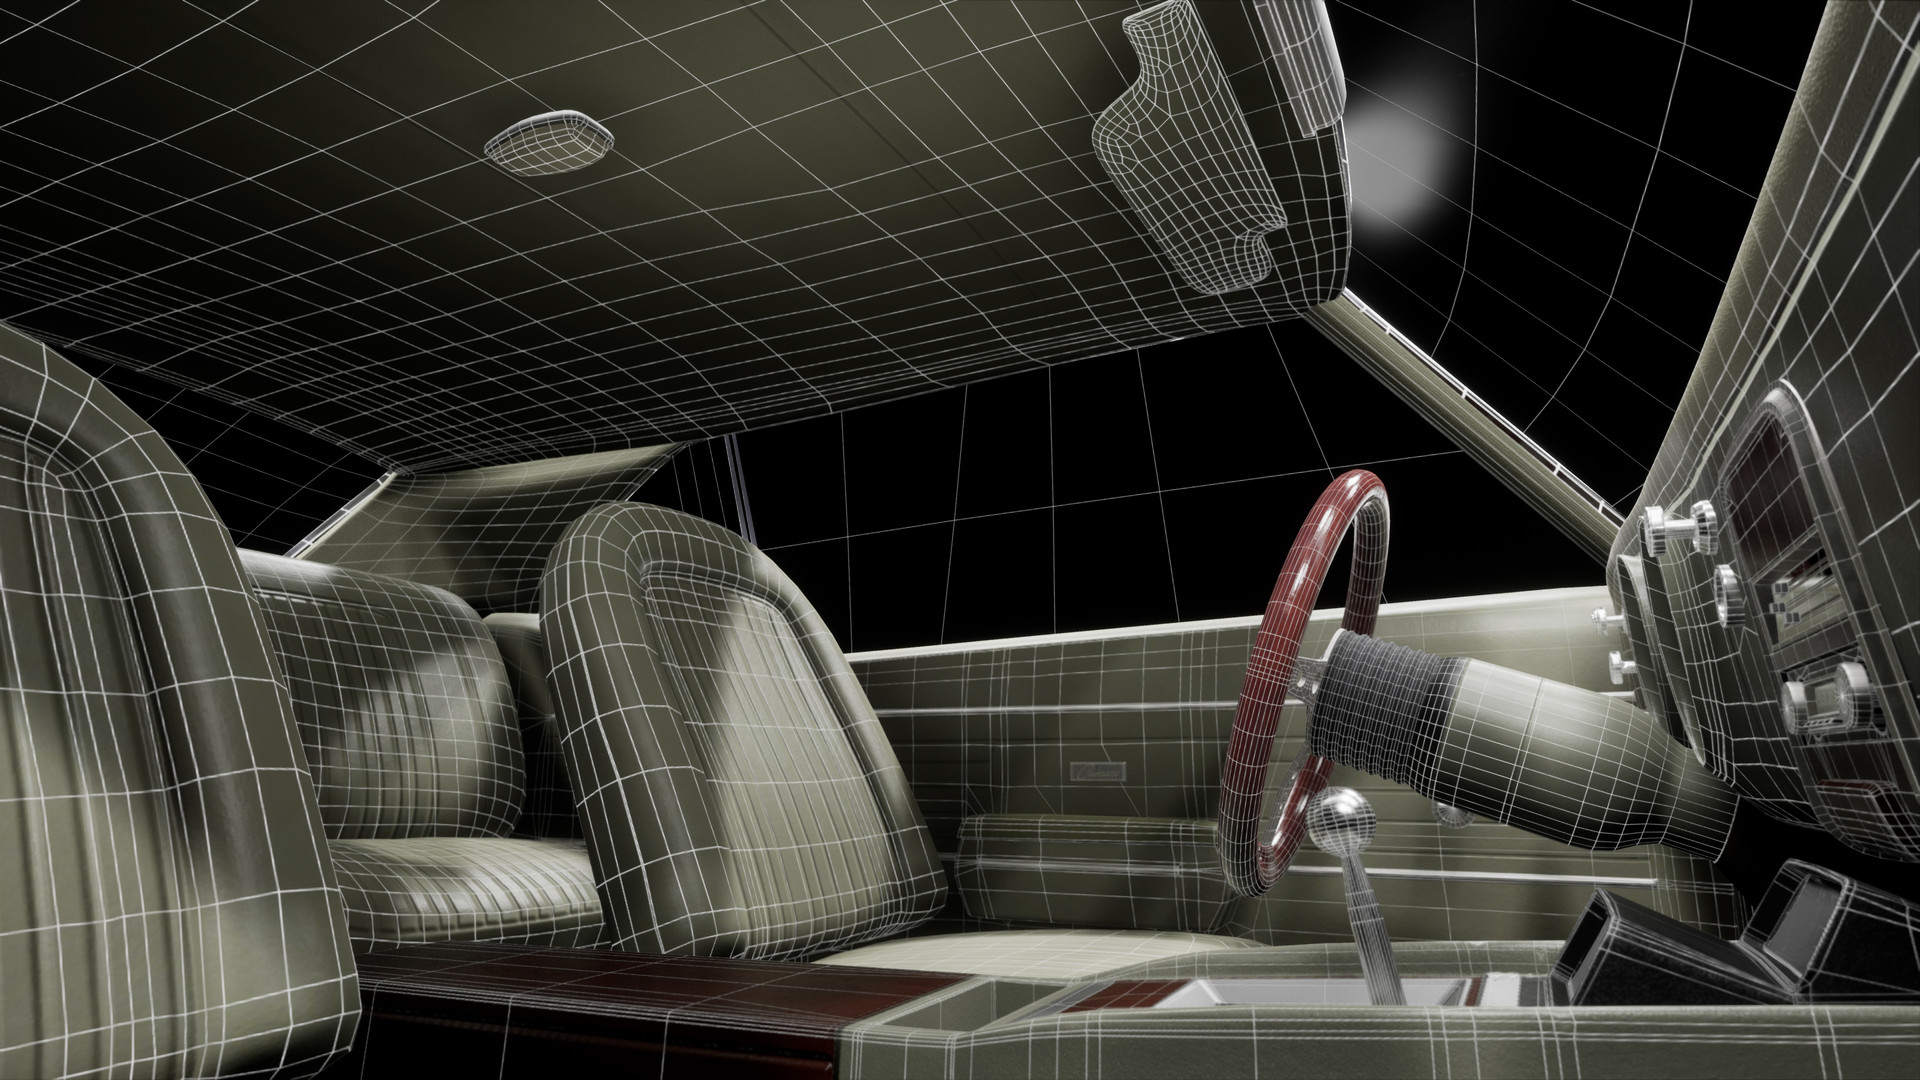 Steven m turner interior wireframe 3